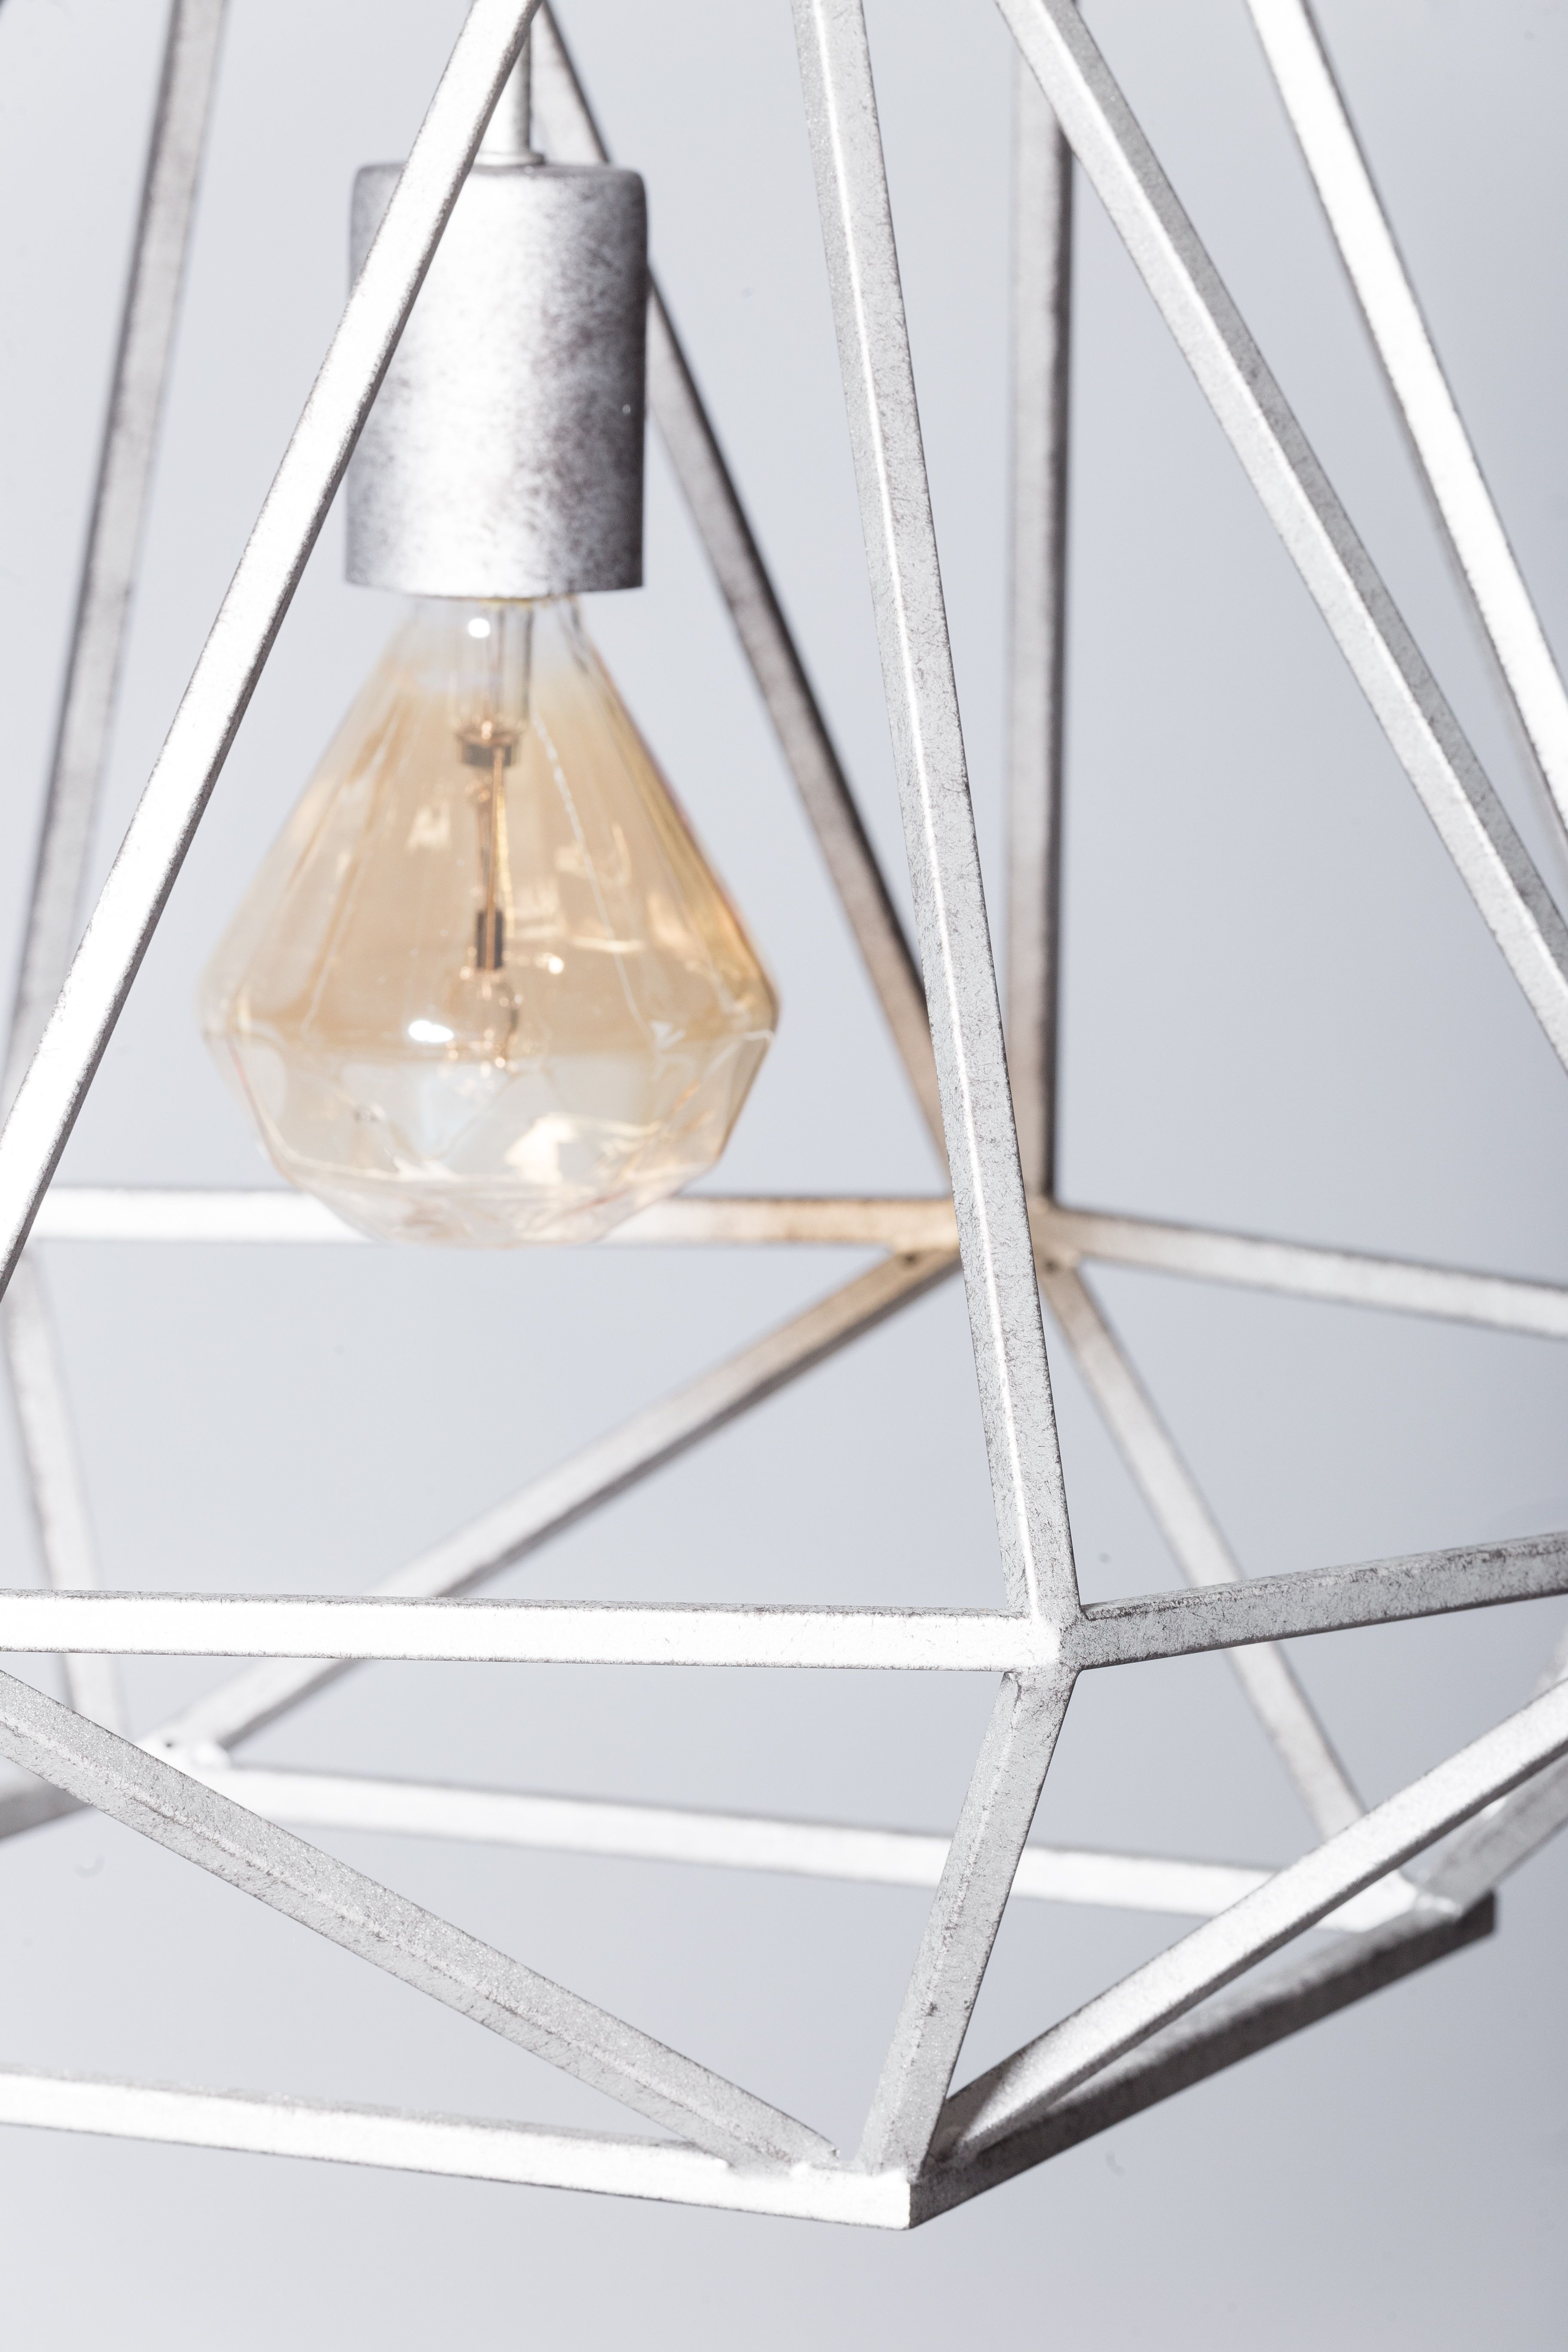 hope-expo-trading-hanglamp-oud-zilver-6